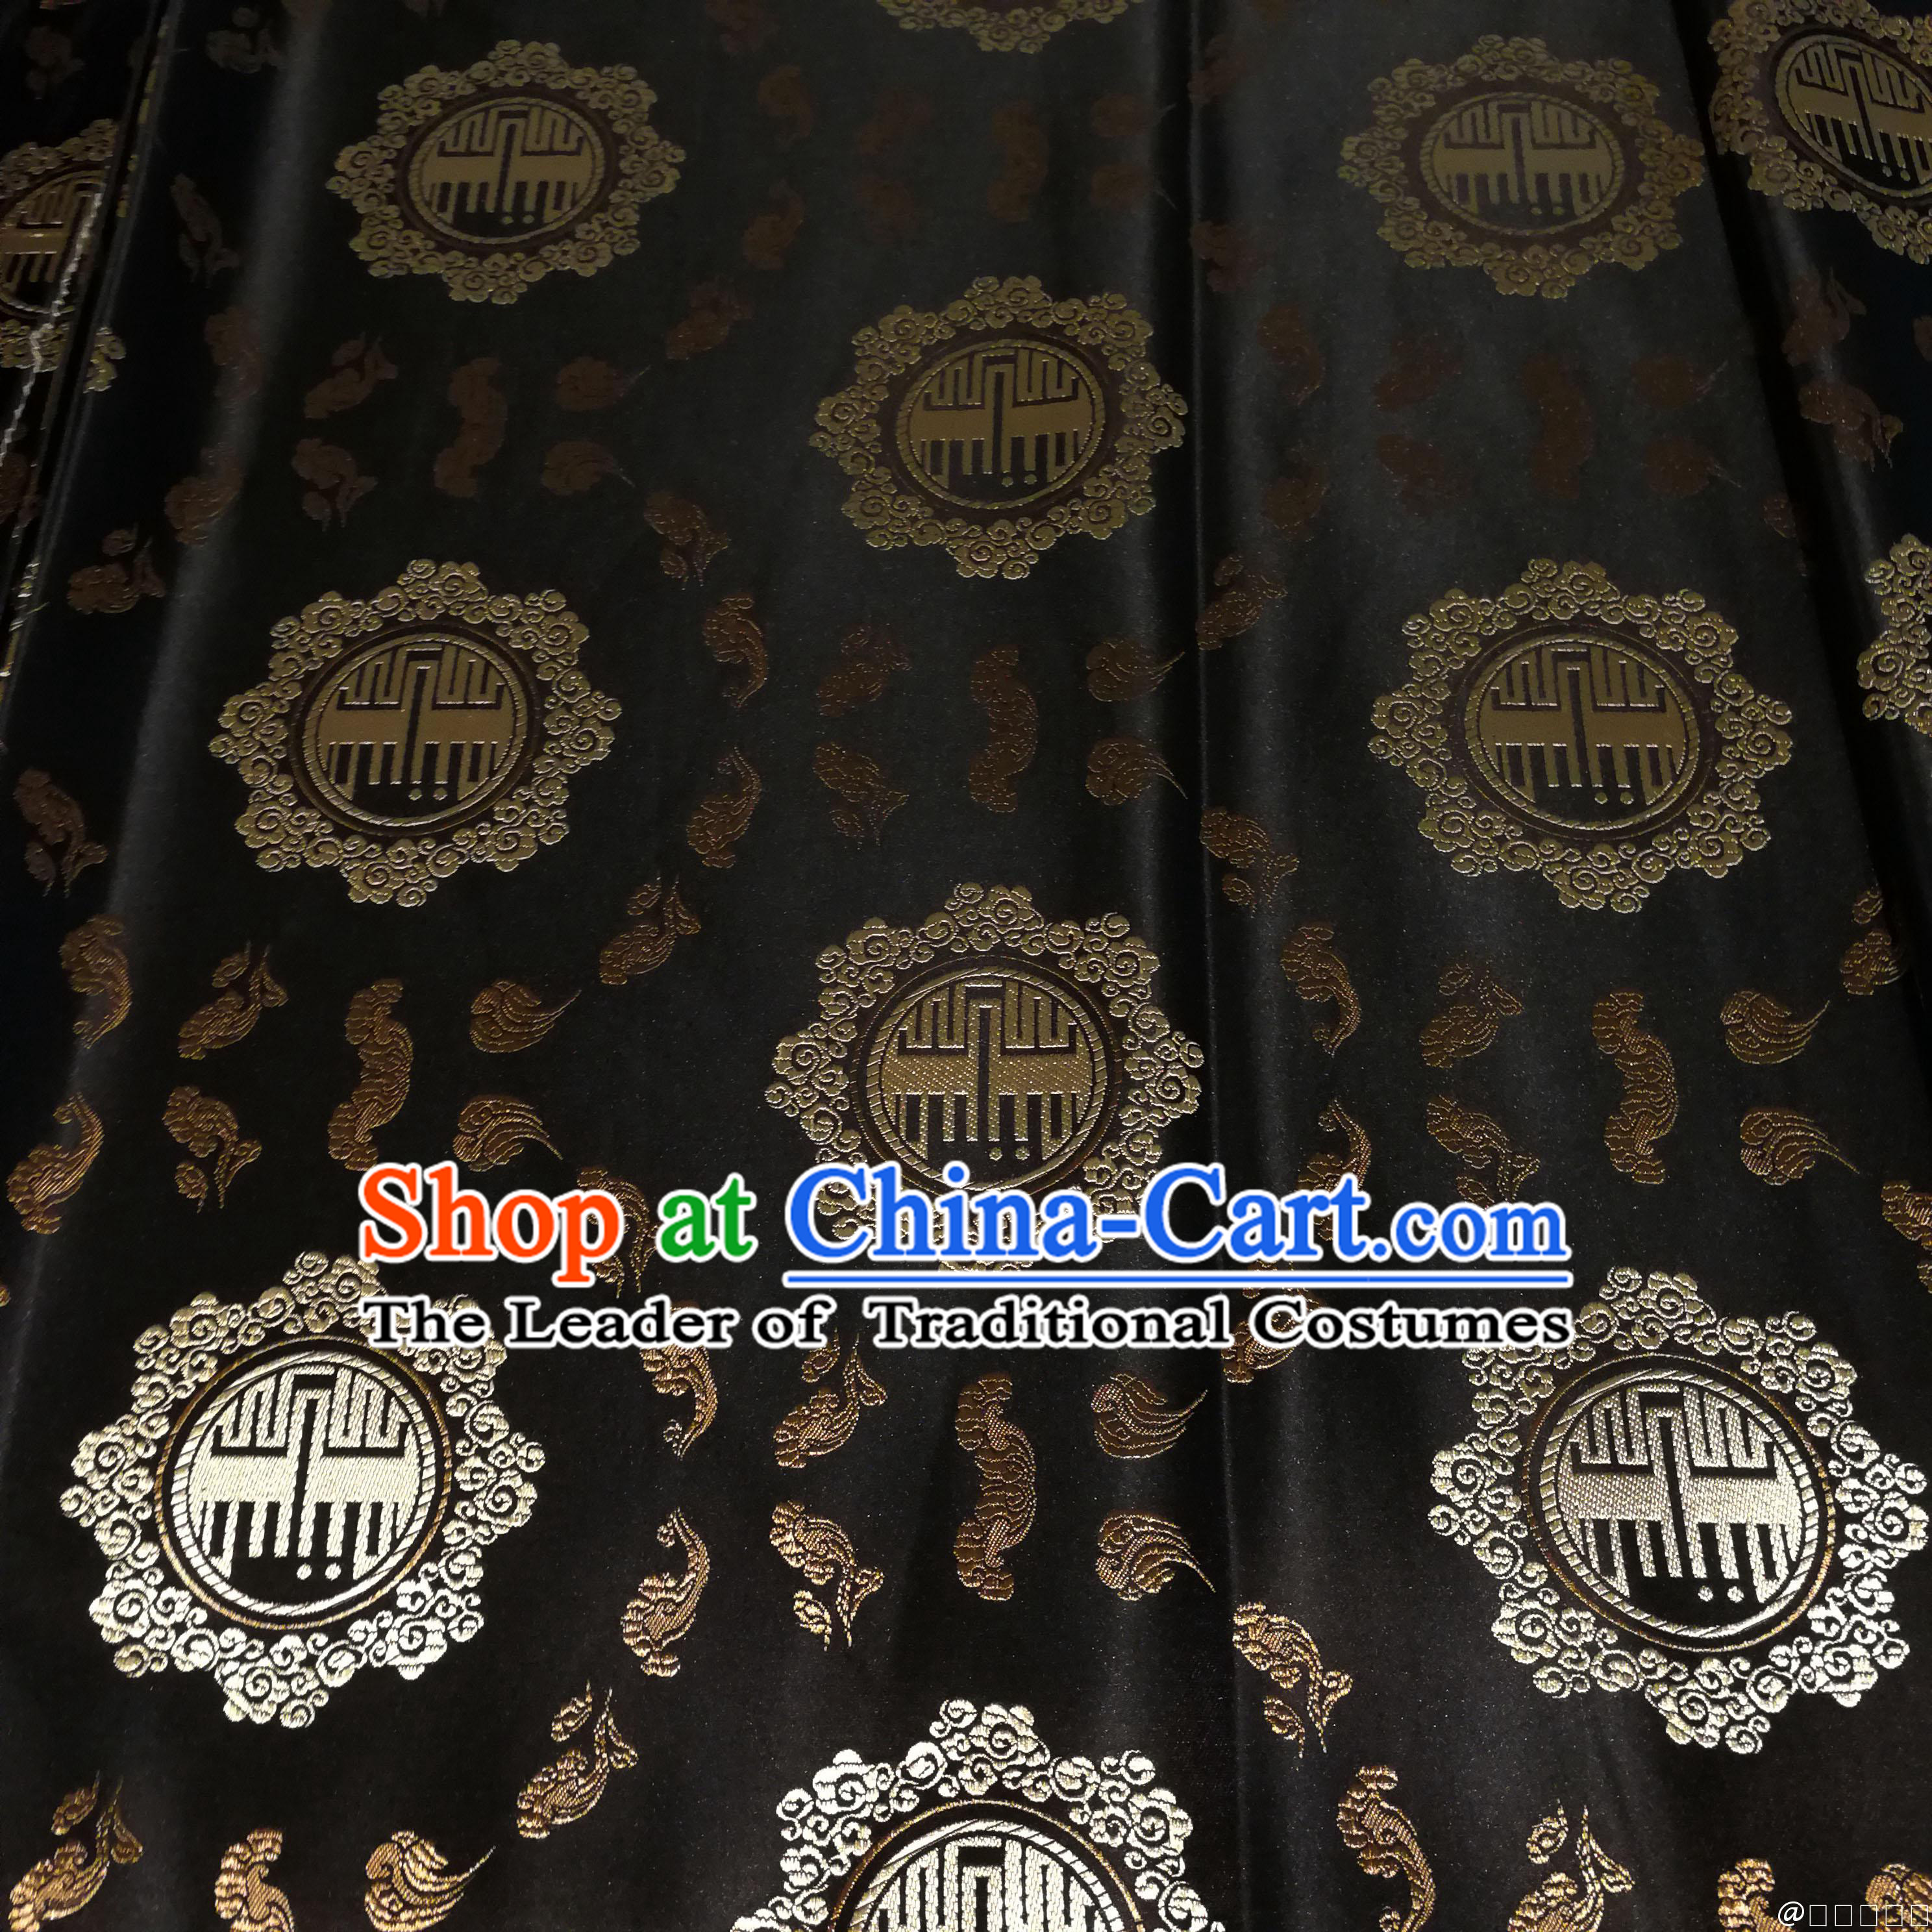 Black Color Chinese Royal Palace Style Traditional Pattern Auspicious Cloud Design Brocade Fabric Silk Fabric Chinese Fabric Asian Material